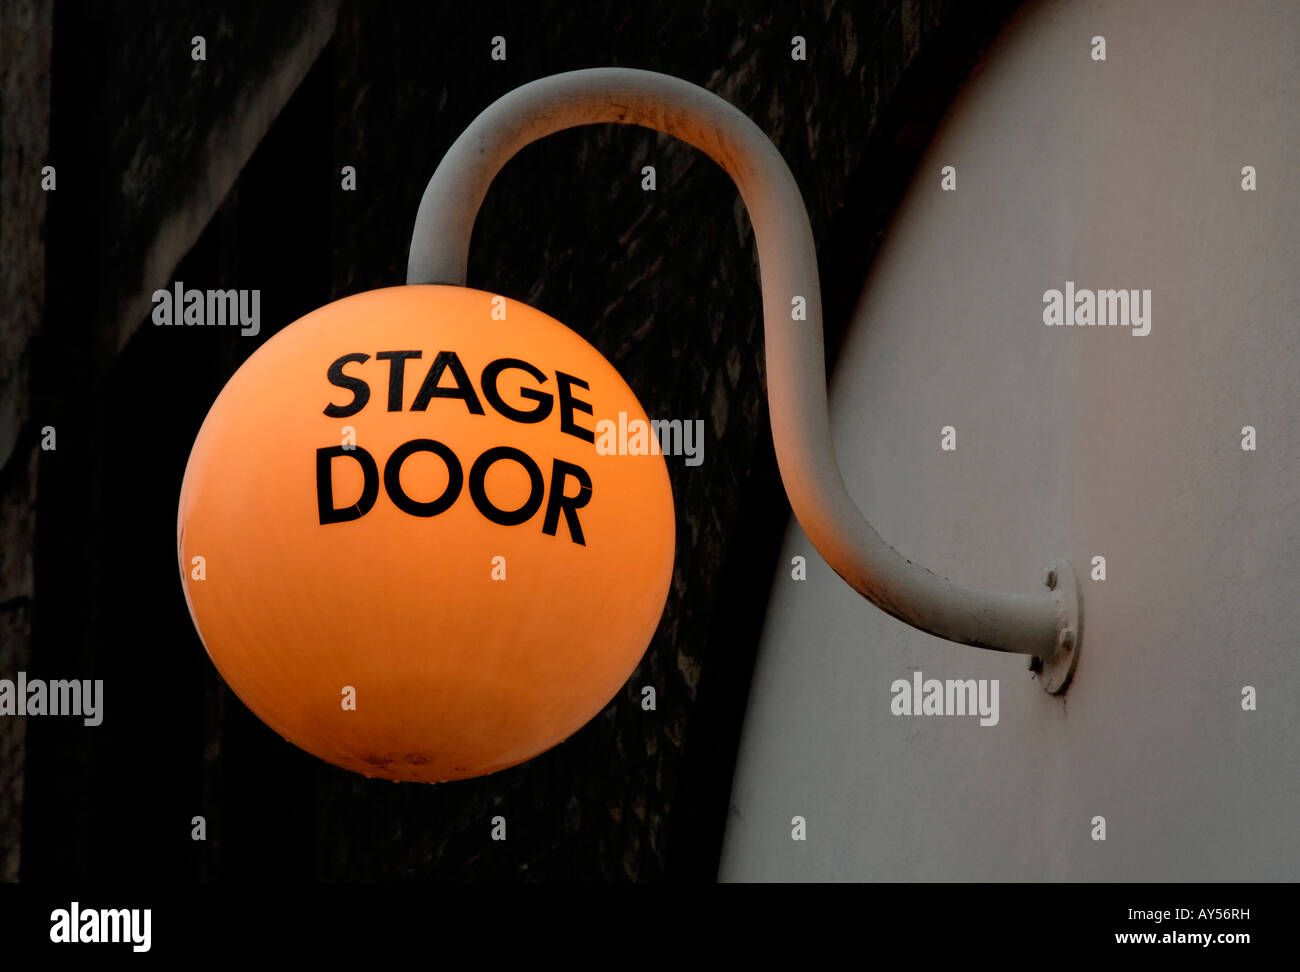 Stage Door illuminated sign, Old Vic Theatre, London, England, Great Britain, United Kingdom, Europe - Stock Image